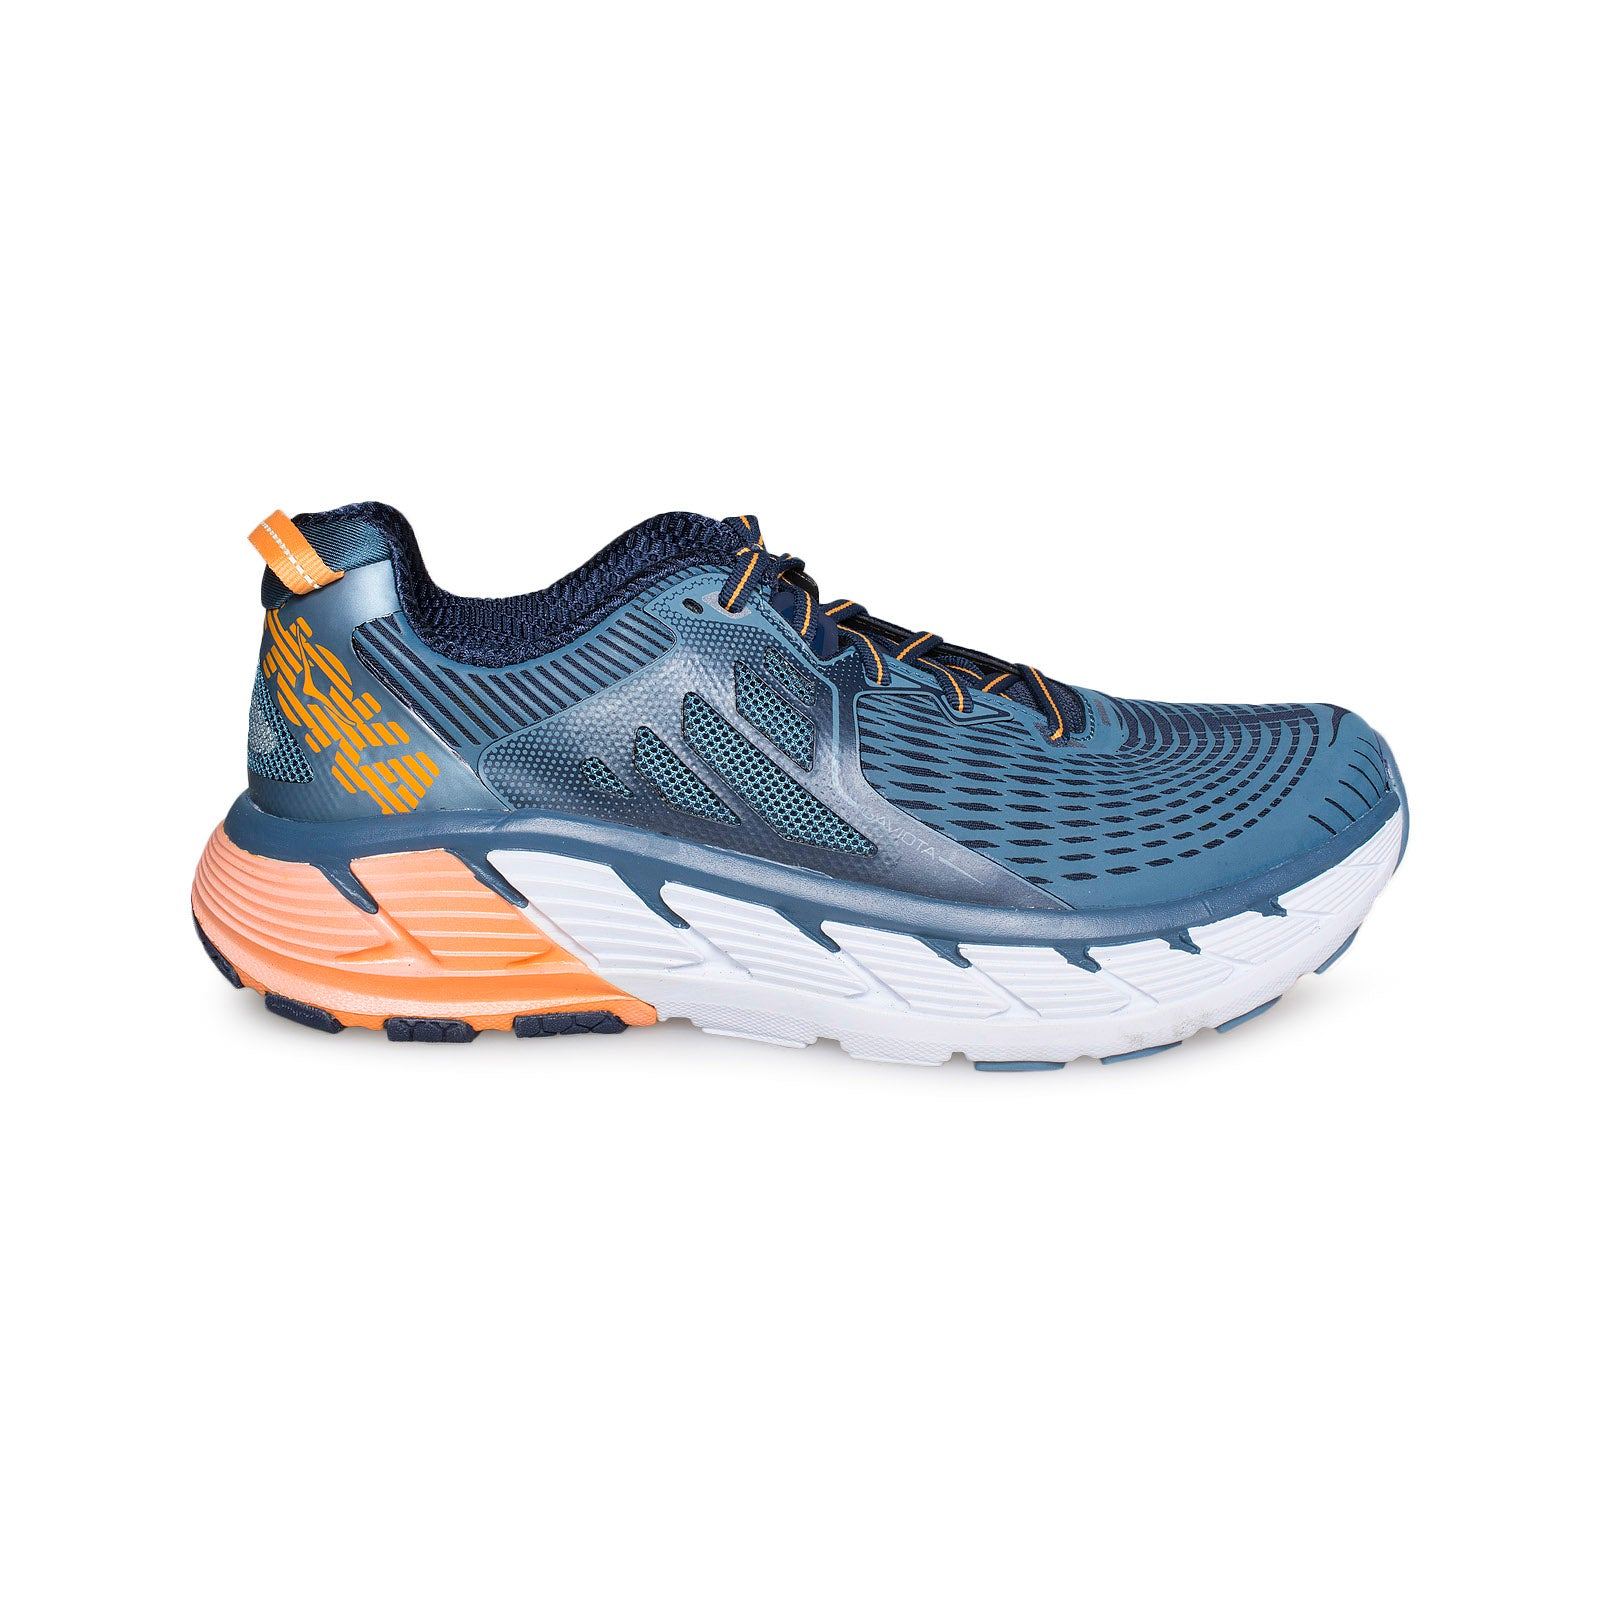 official photos 81f42 ec8f7 Hoka One One Gaviota Bluestone / Black Iris Running Shoes - Men's